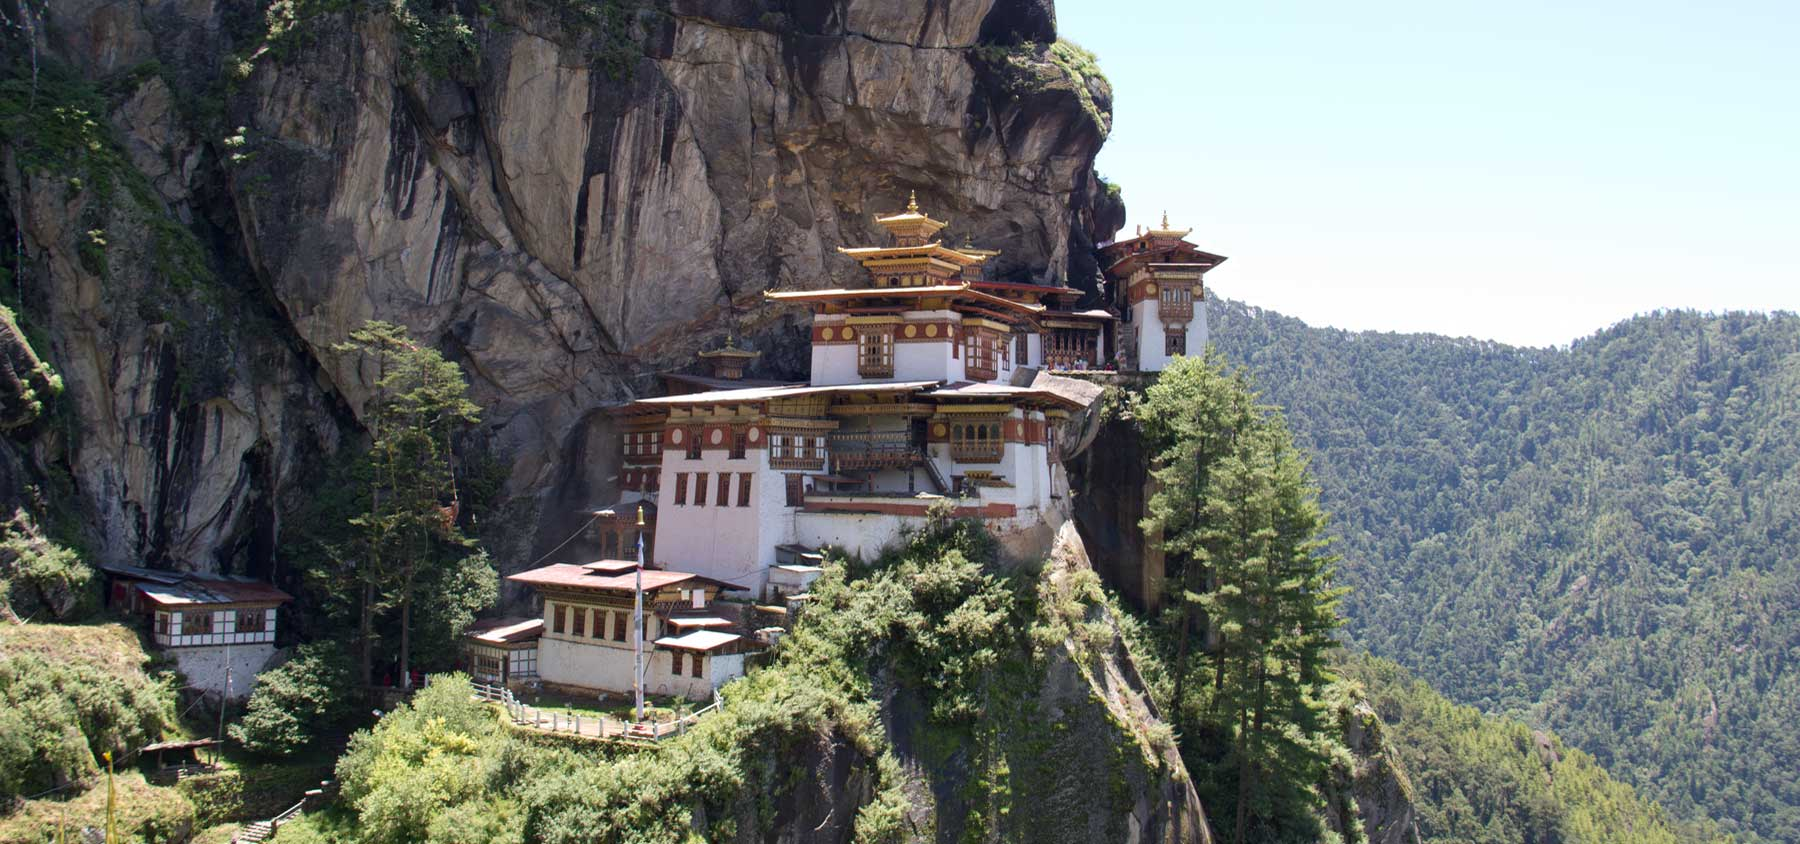 Photo of Paro Taktsang Bhutan, Glimpse of Bhutan Tour